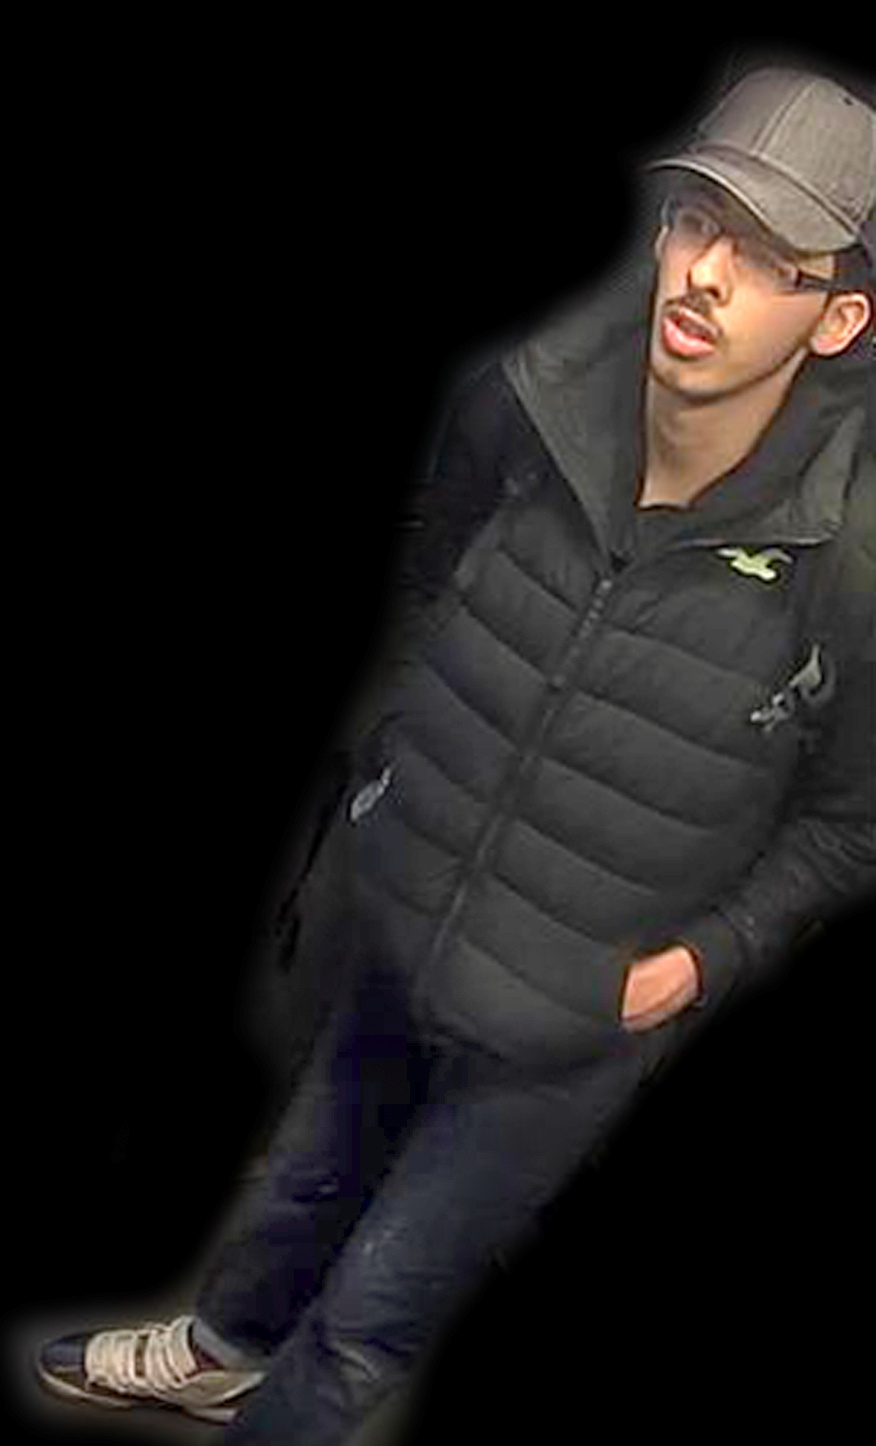 Salman Abedi, the bomber behind the Manchester suicide bombing, is seen in this image taken from CCTV on the night he committed the attack in this handout photo released, May 27, 2017, from the Greater Manchester Police.